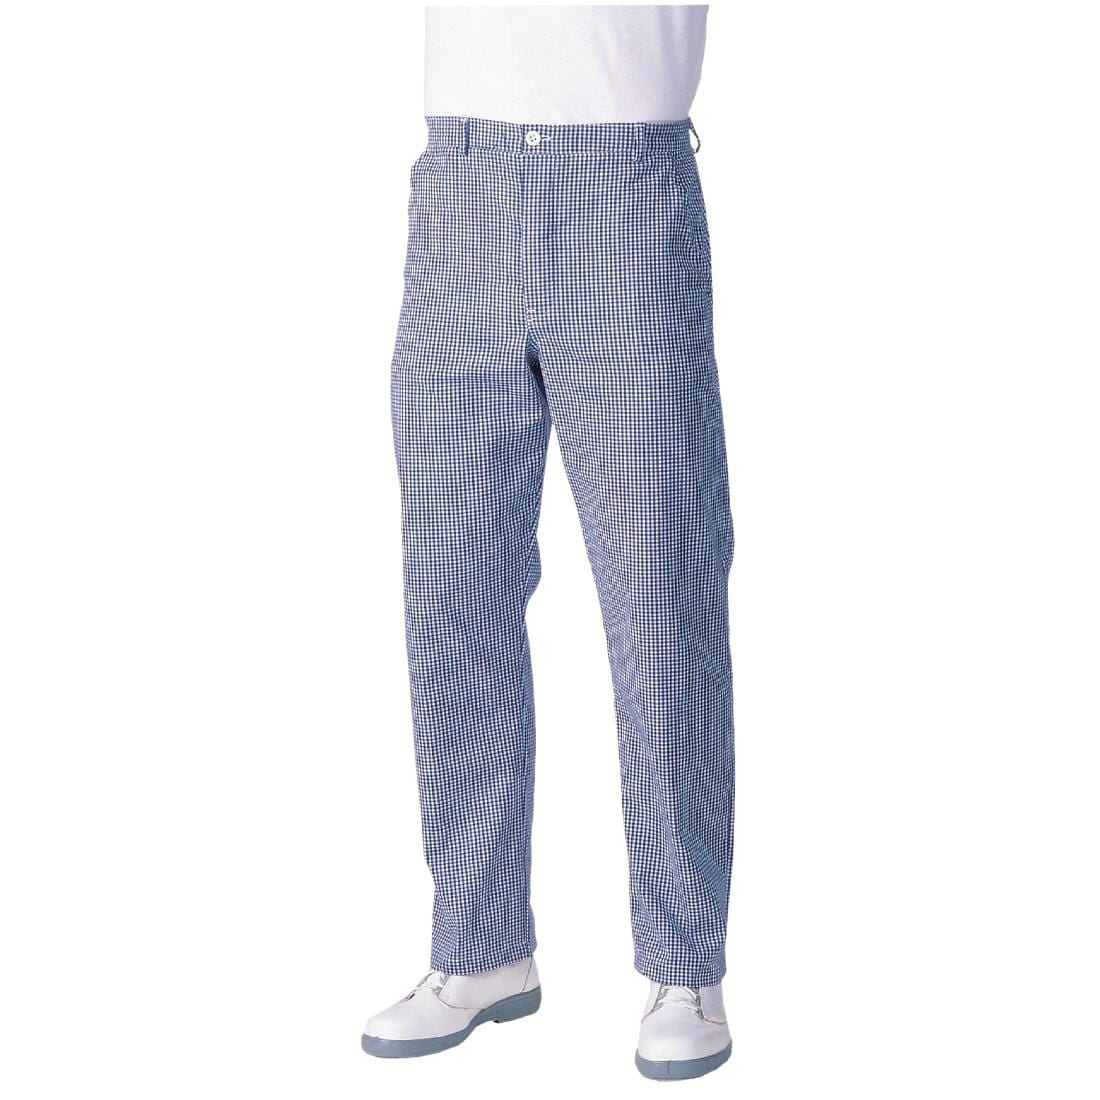 Whites Mens Chef Trousers Blue and White Check Extra Long 36in